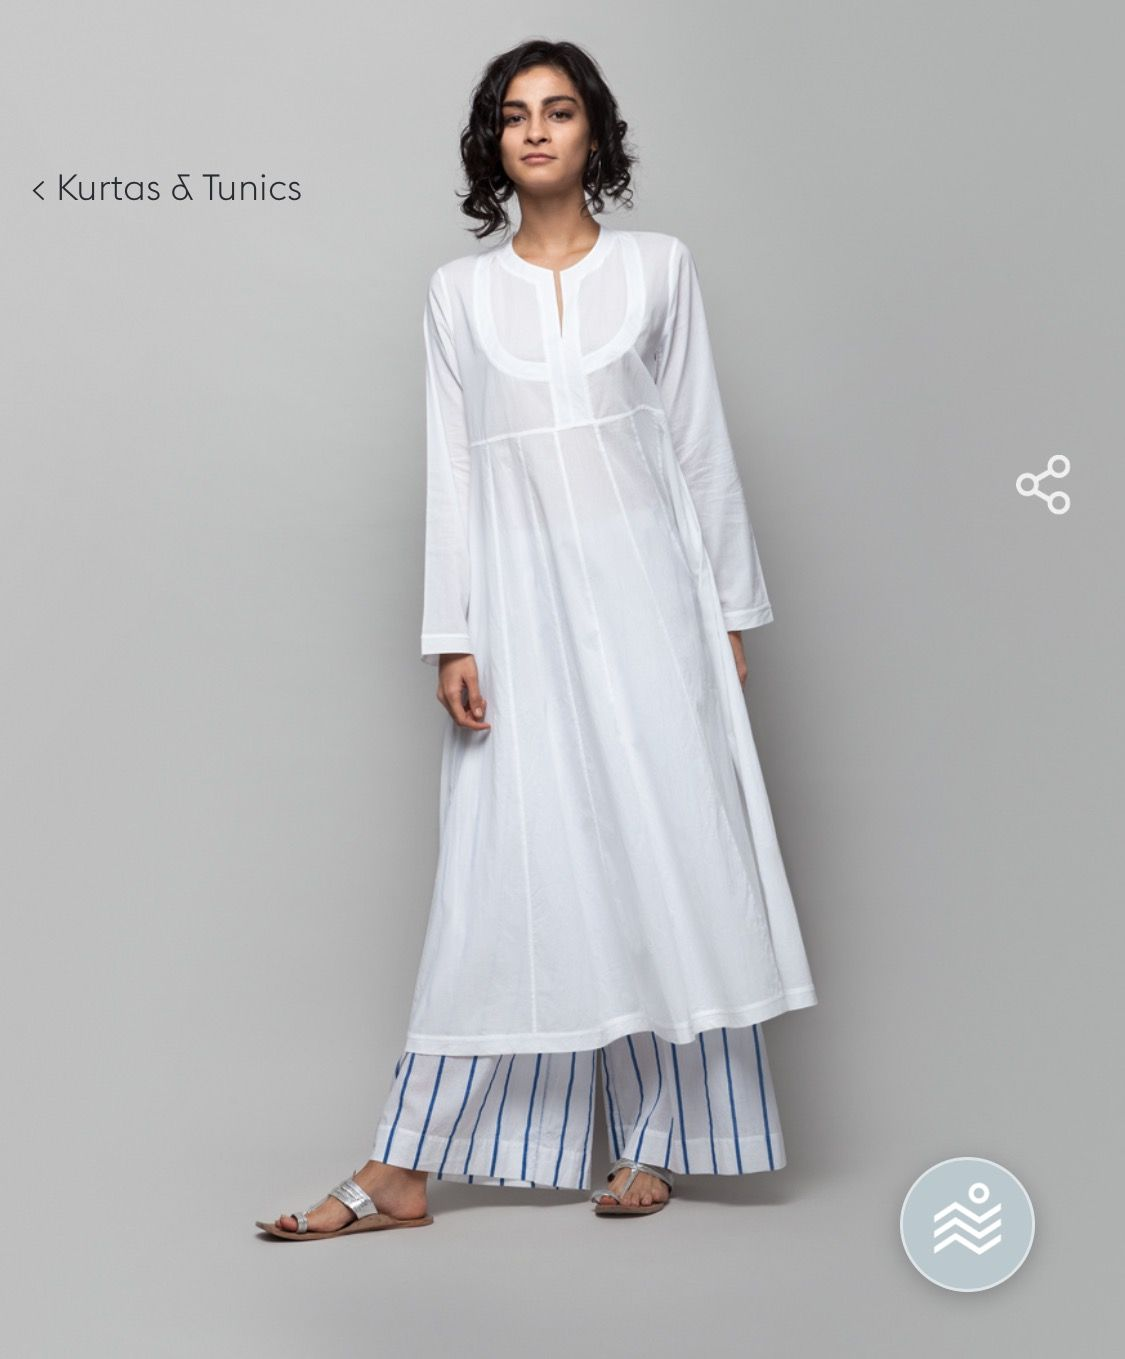 White love, kurta love | Kurtas - can\'t do without\'em | Pinterest ...